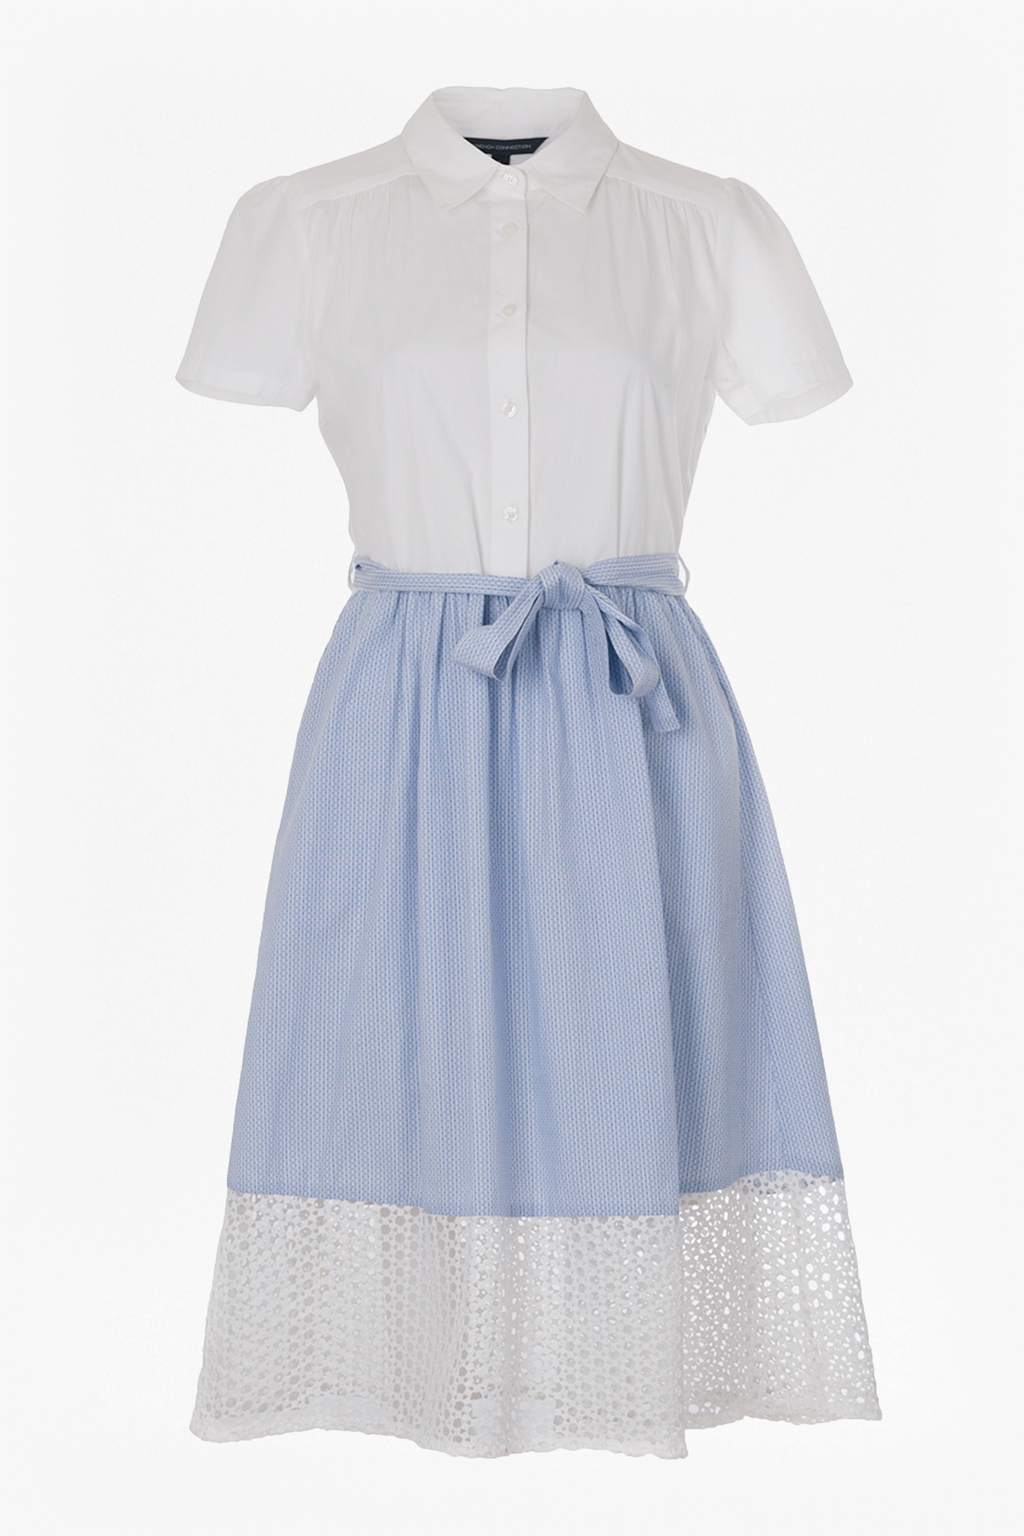 French Connection Kyra Cotton Shirt Dress In White Lyst